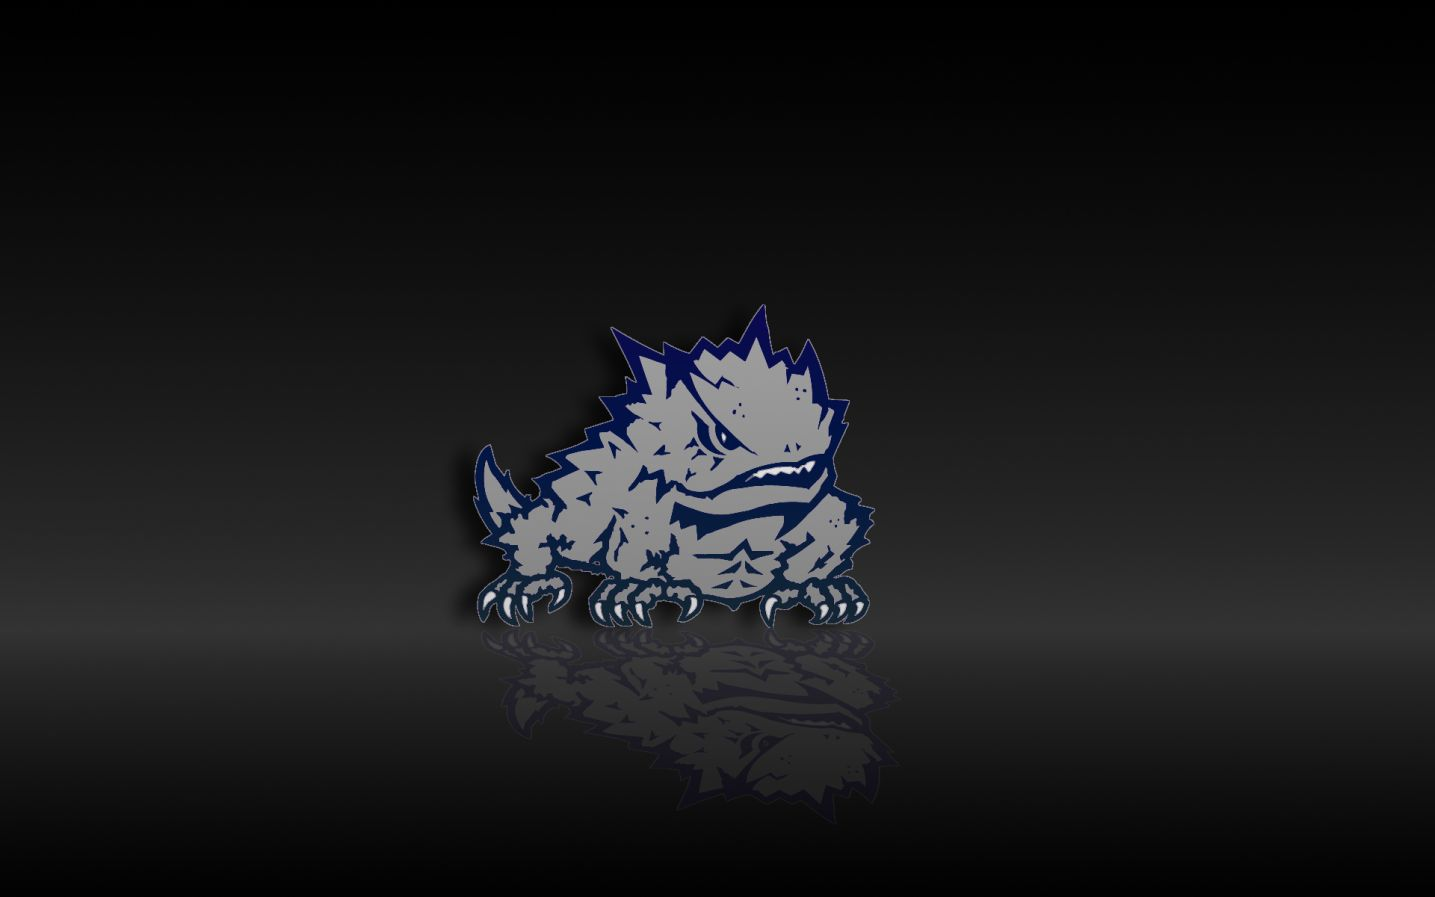 TCU Wallpaper, Chrome Browser Themes & More for Horned Frog Fans ...